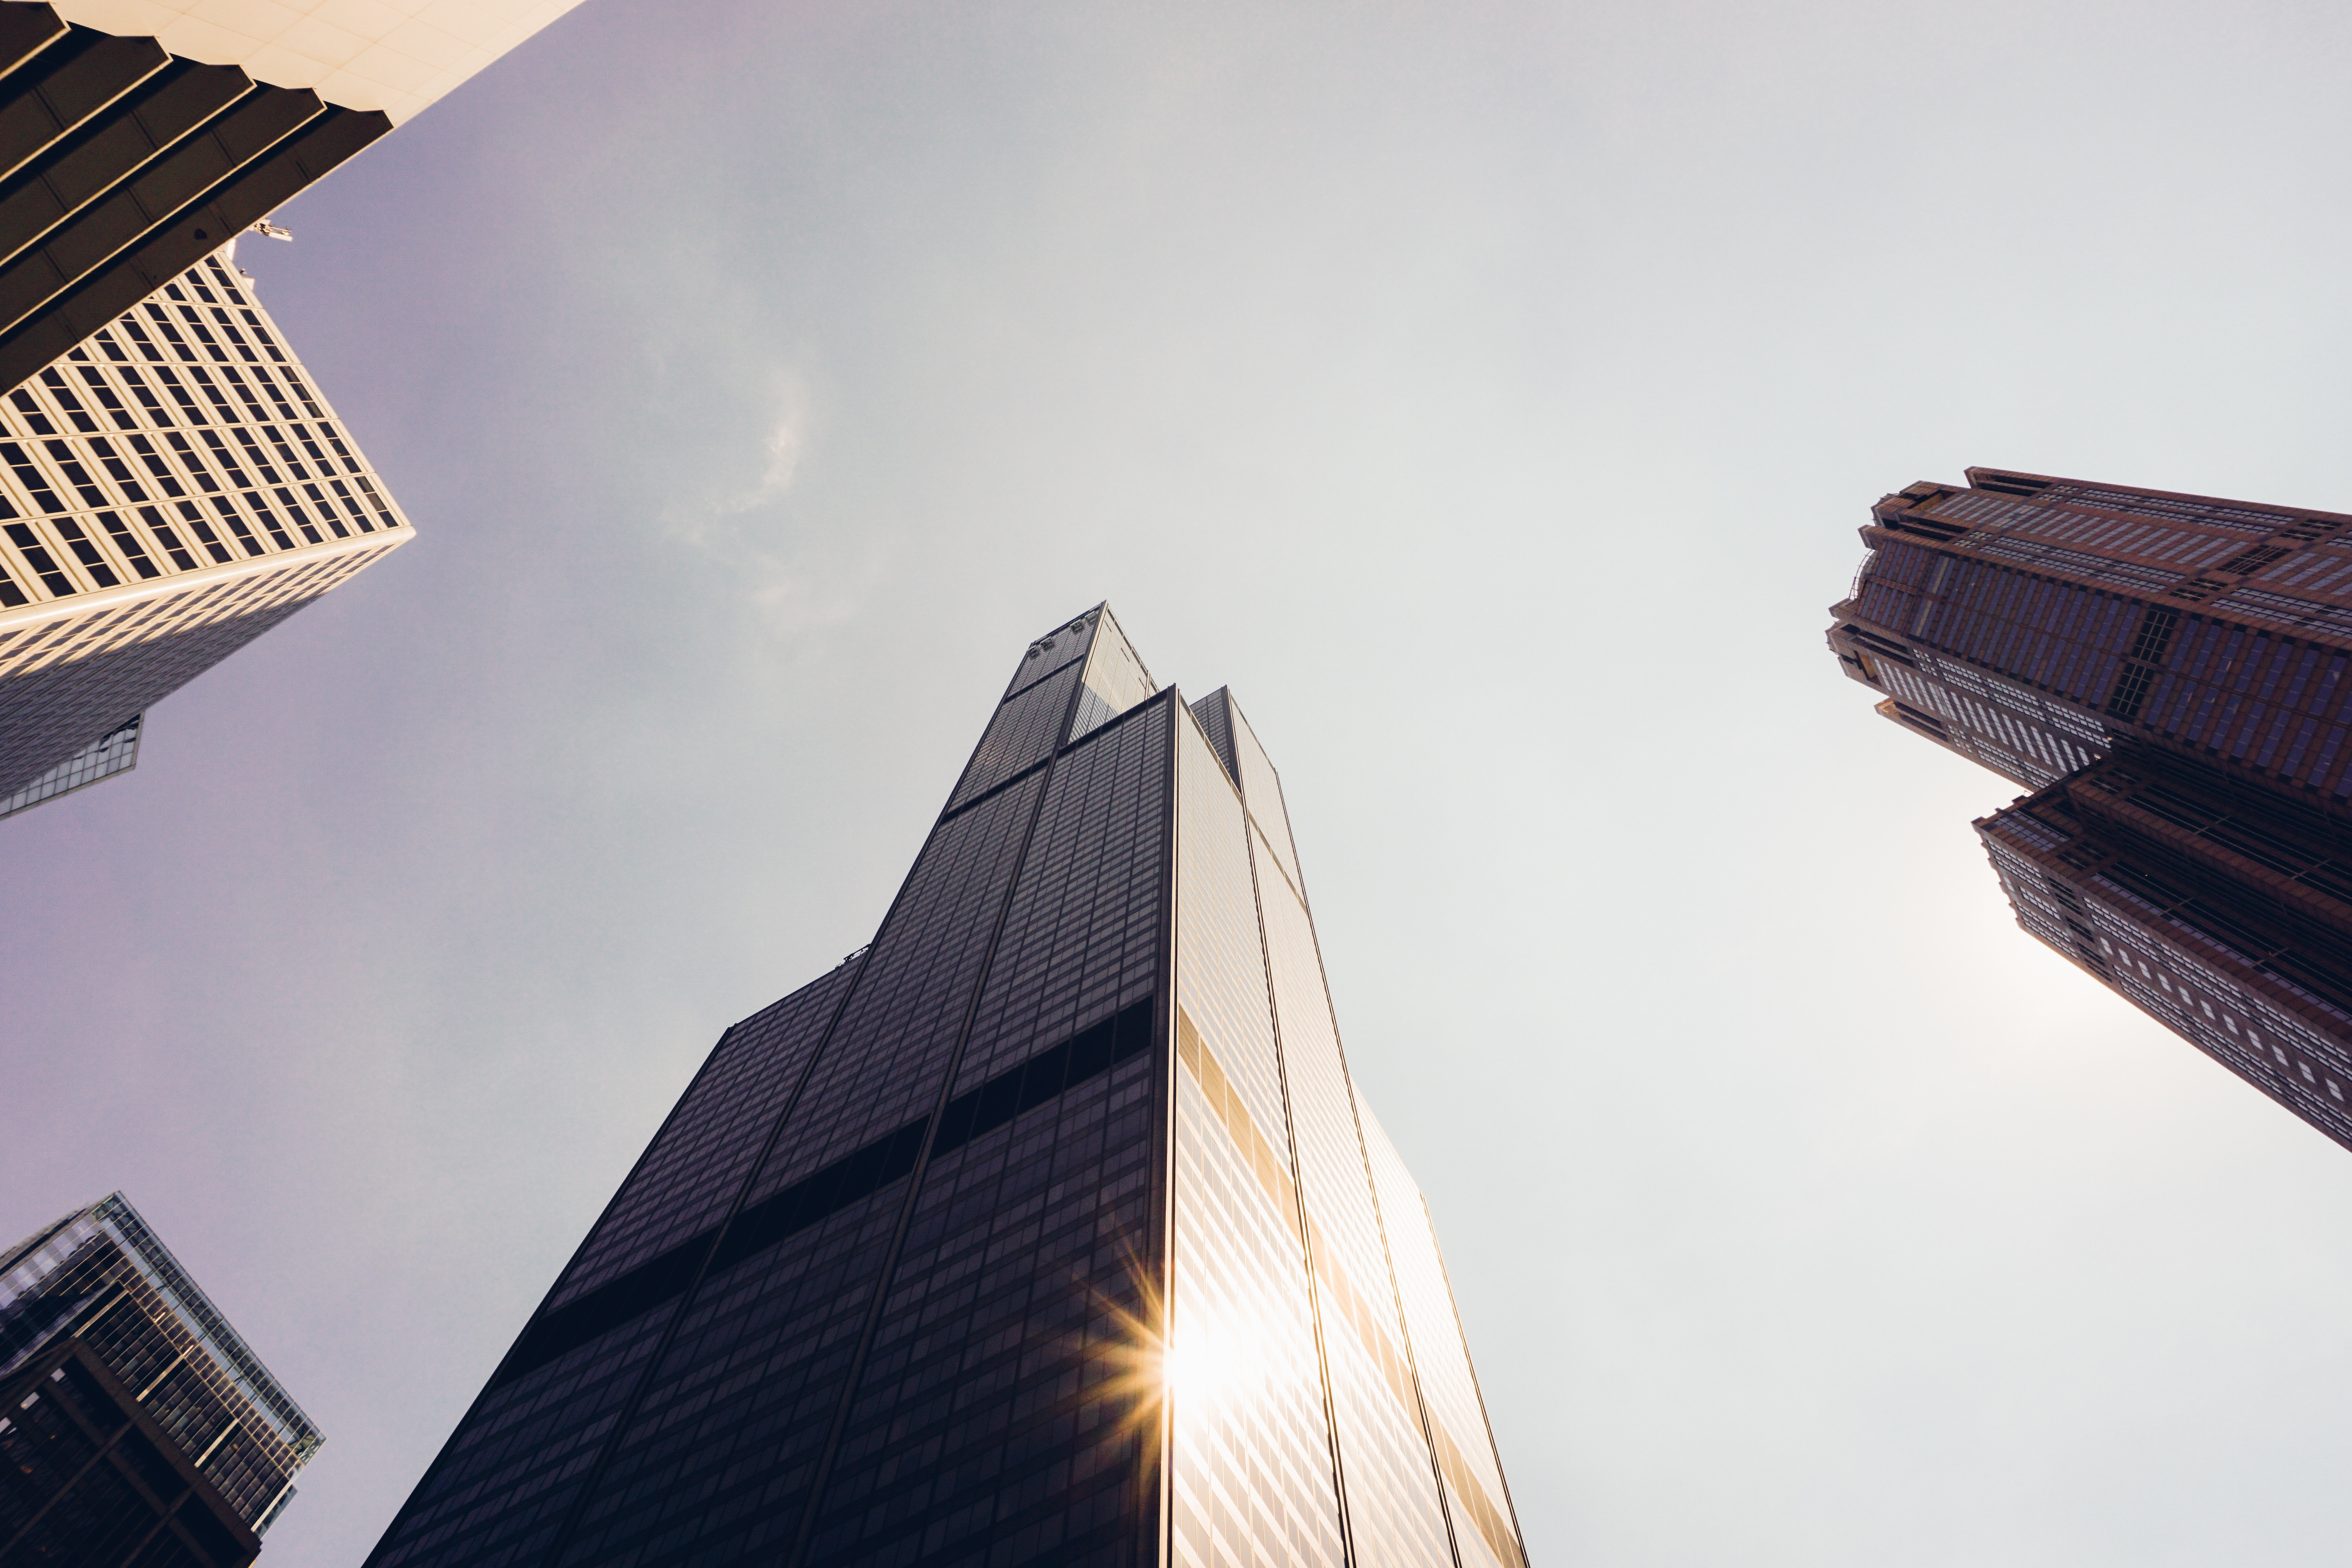 willis-tower-upward-view-with-sun-flare.jpg